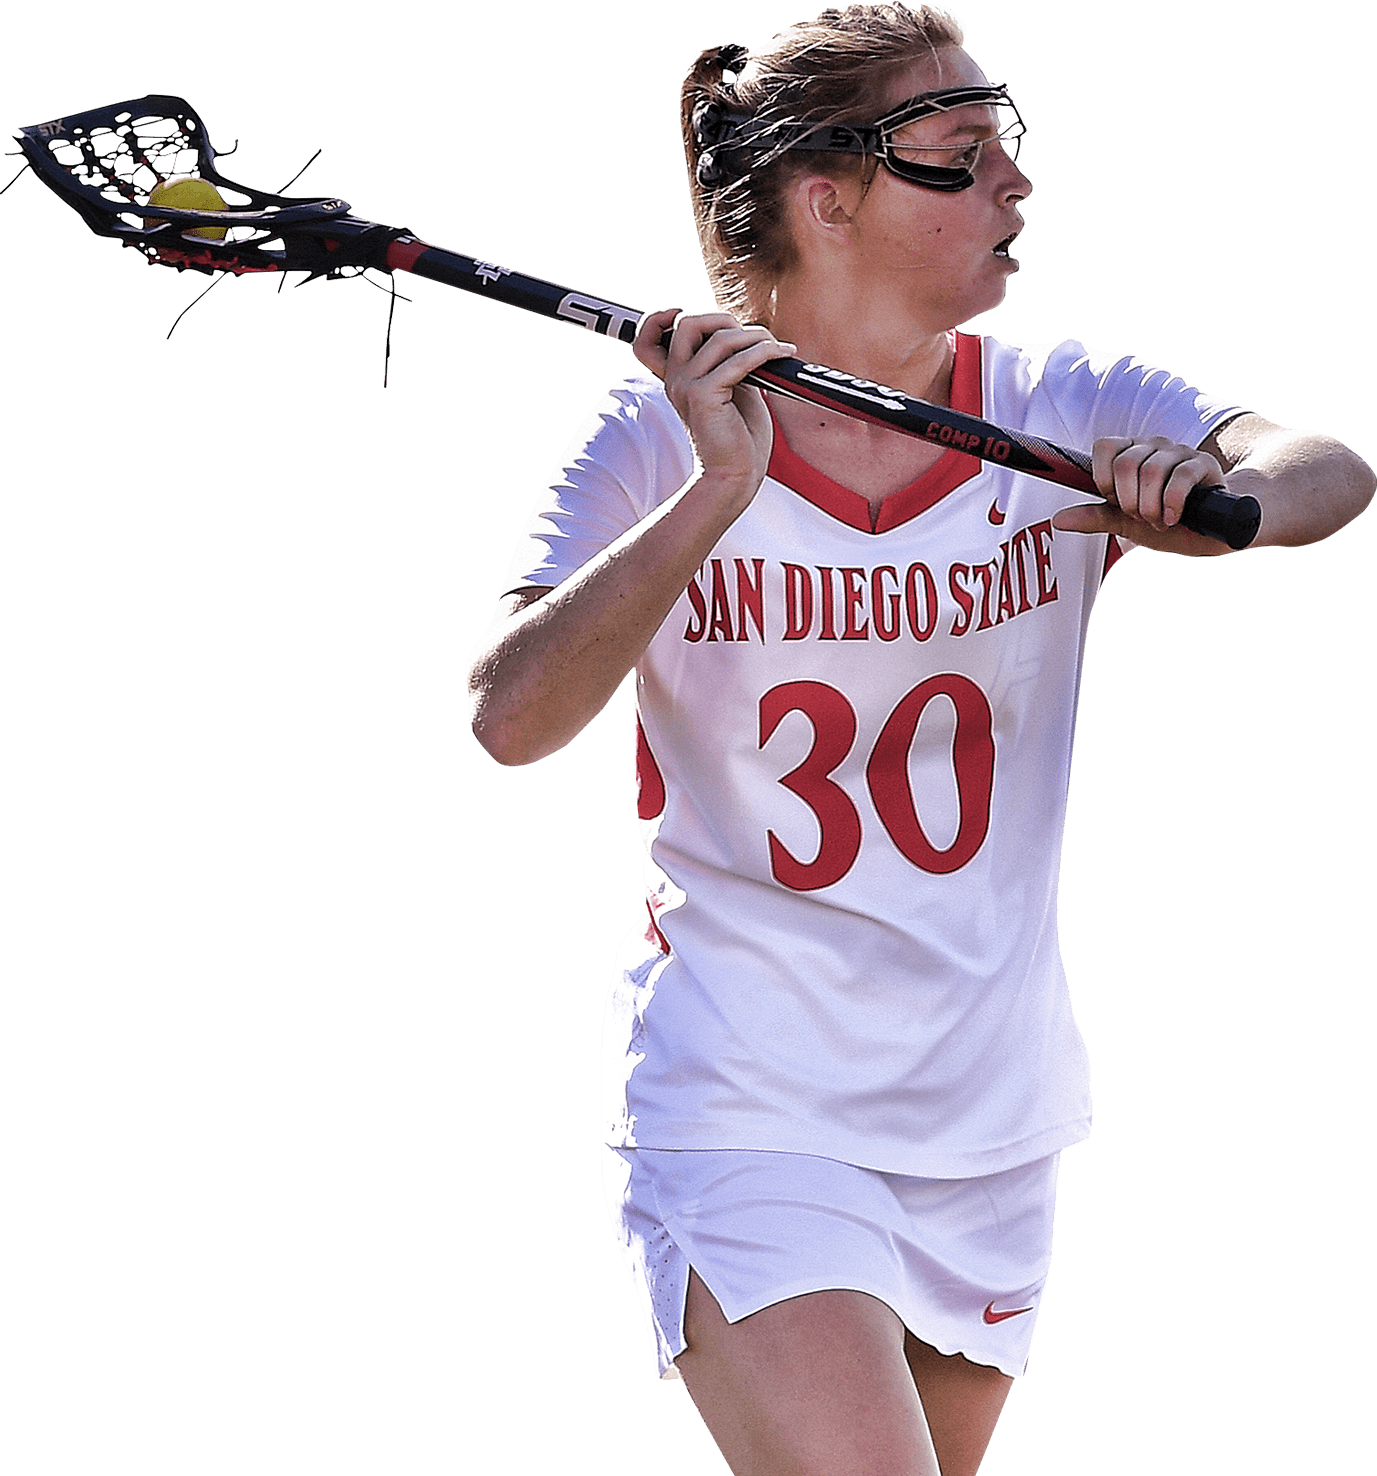 Women's lacrosse student-athlete